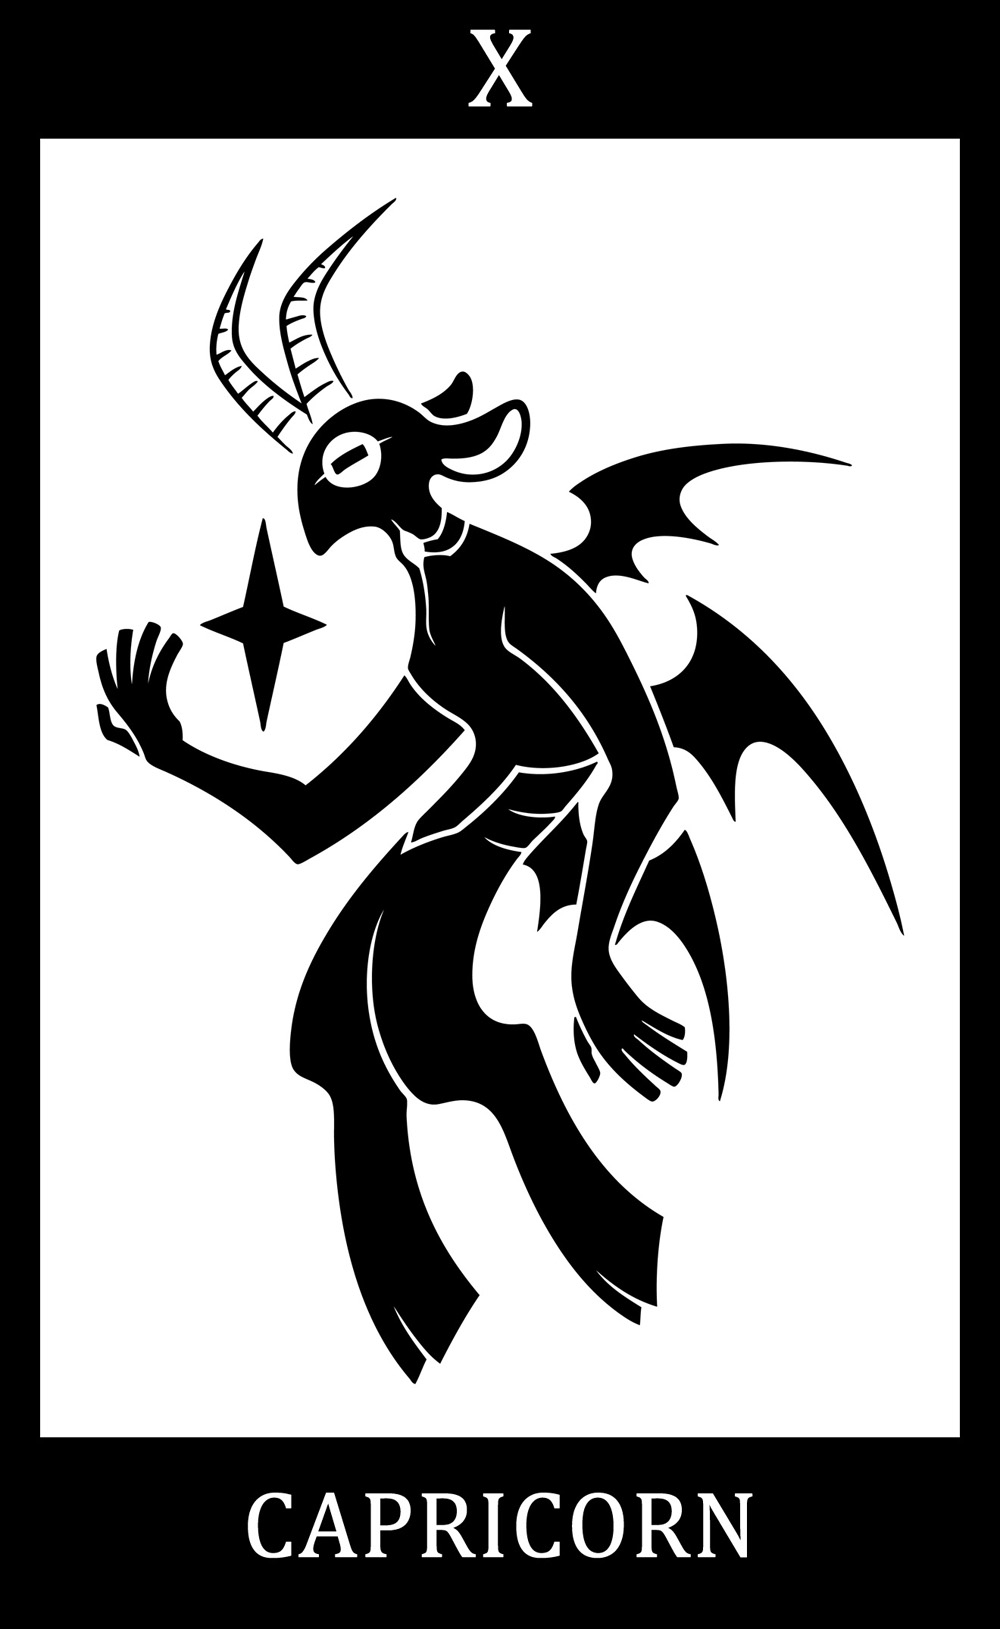 10 - Capricorn - SCP-2636 - The Last Daughter of Thsassashan'aa